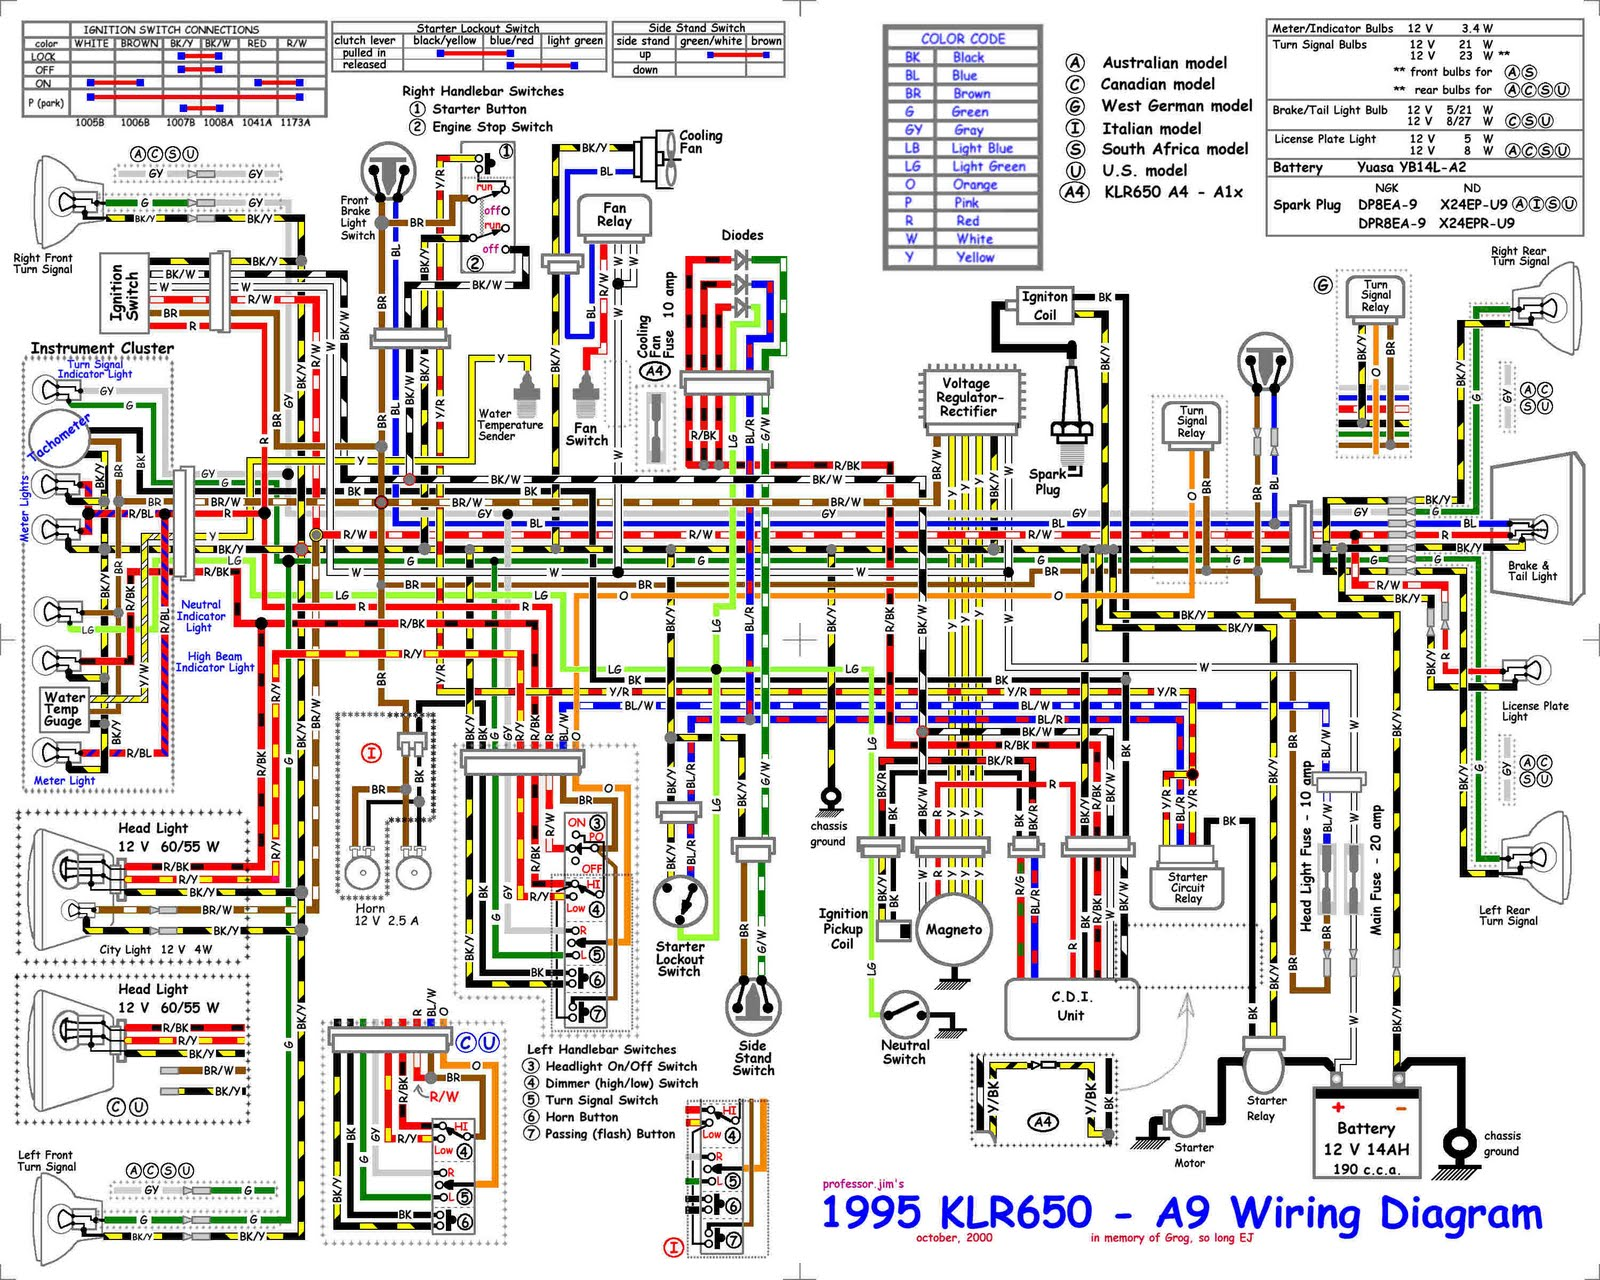 1974 monte carlo wiring diagram auto wiring diagrams premium automotive electrical wiring diagrams 2004 monte carlo ss wiring diagrams at eliteediting.co